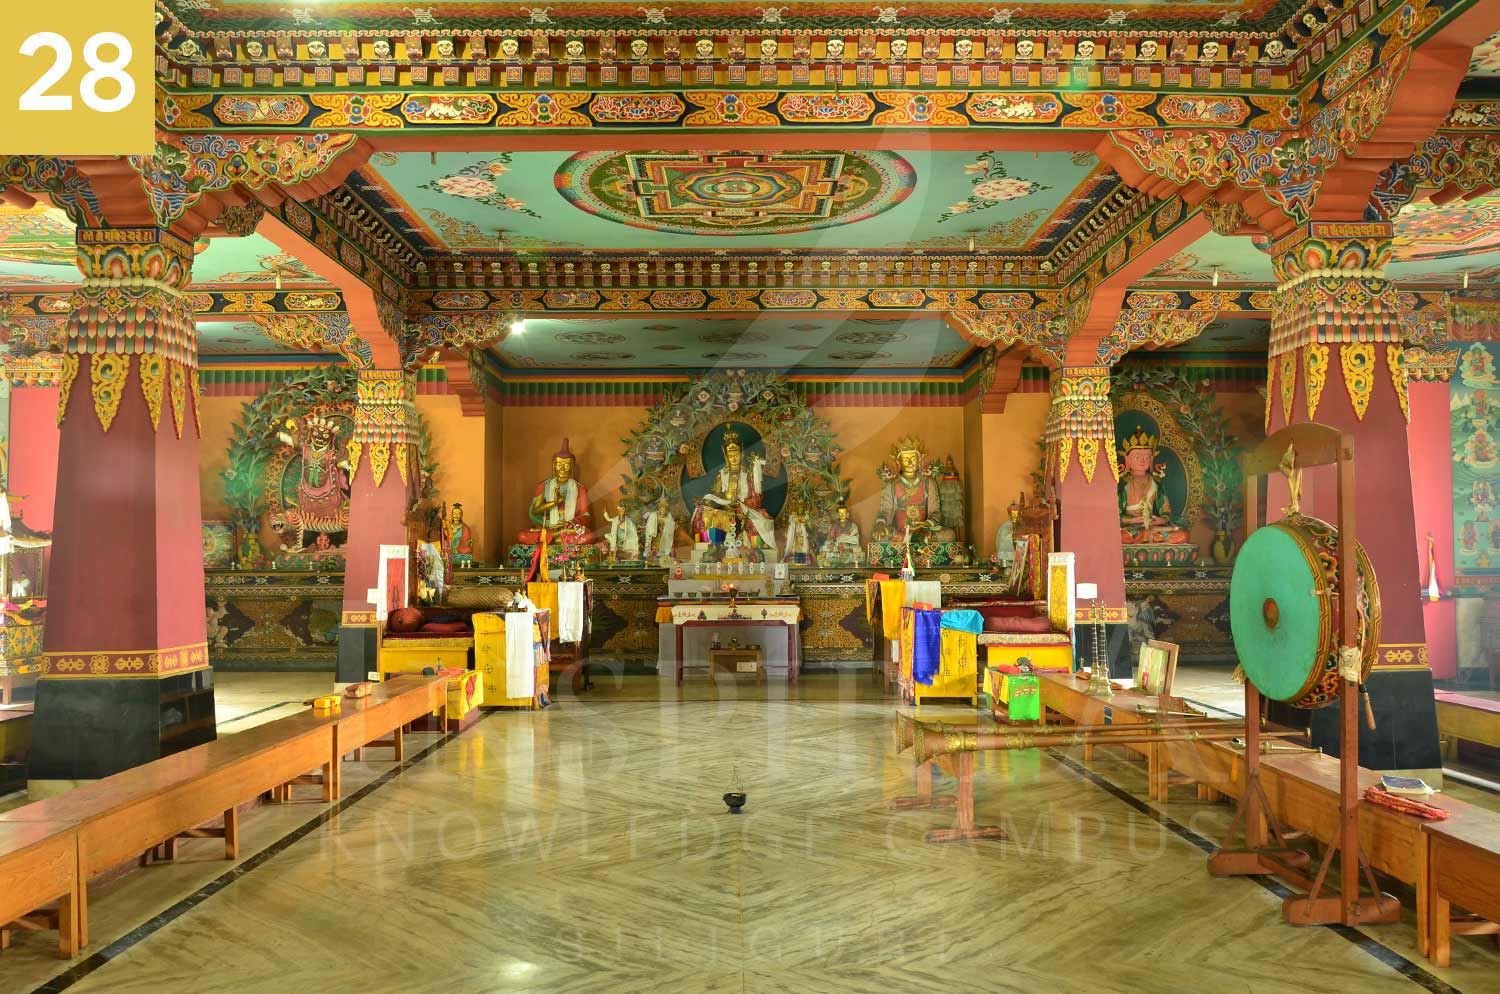 inside view of rangapani monastery, darjeeling district, west bengal